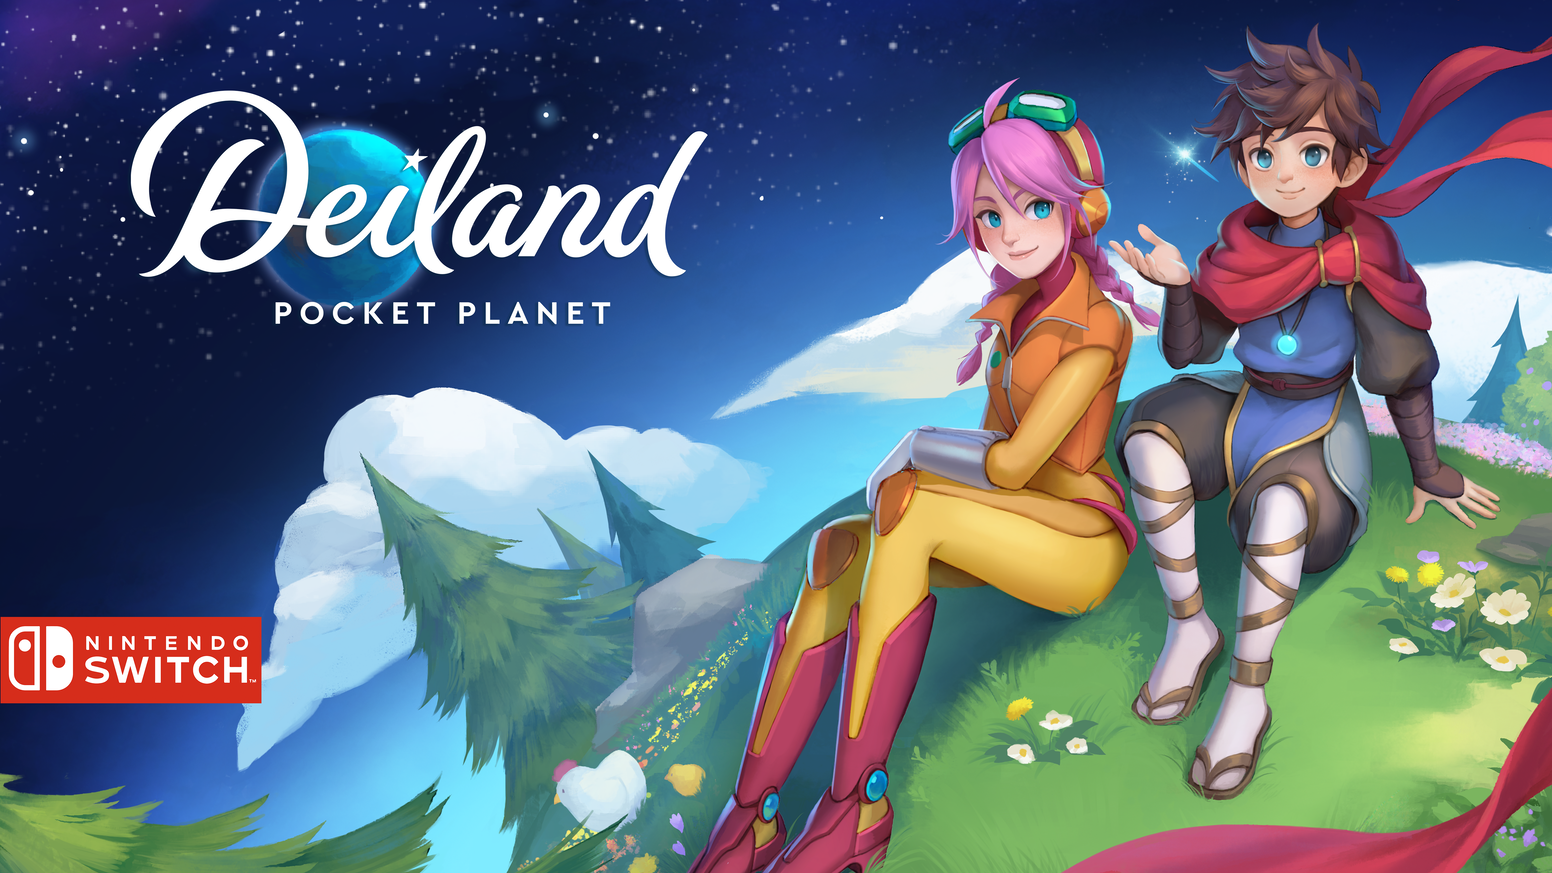 Discover Deiland: Pocket Planet Edition. Enjoy a relaxing farming adventure with unique content only for Nintendo Switch.